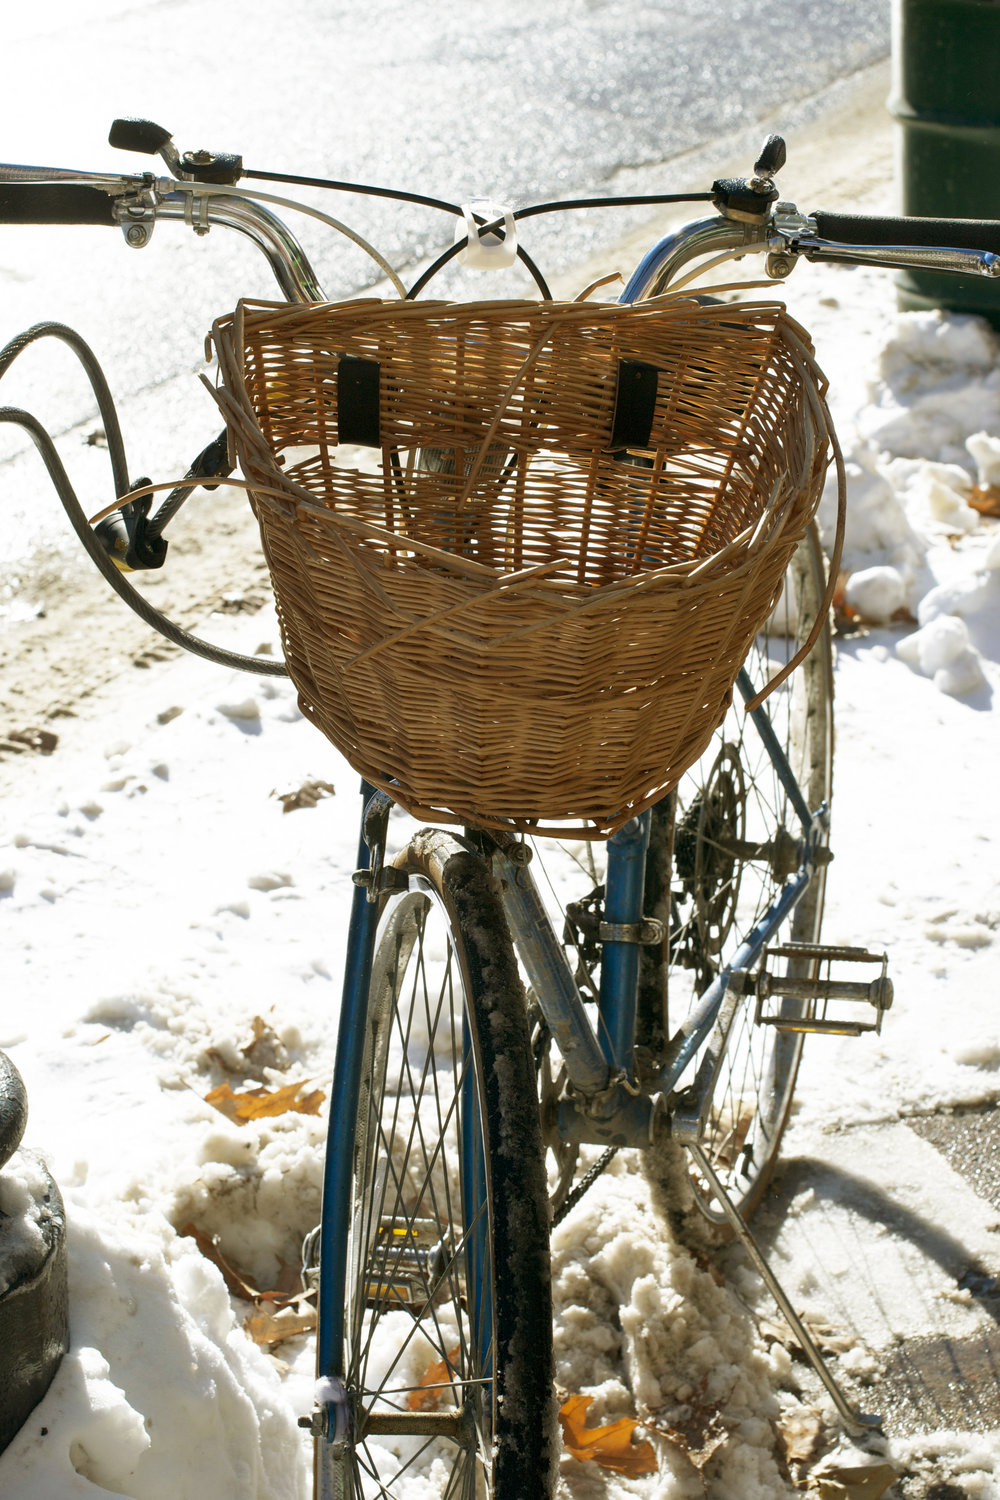 bike-with-wicker-basket.jpg